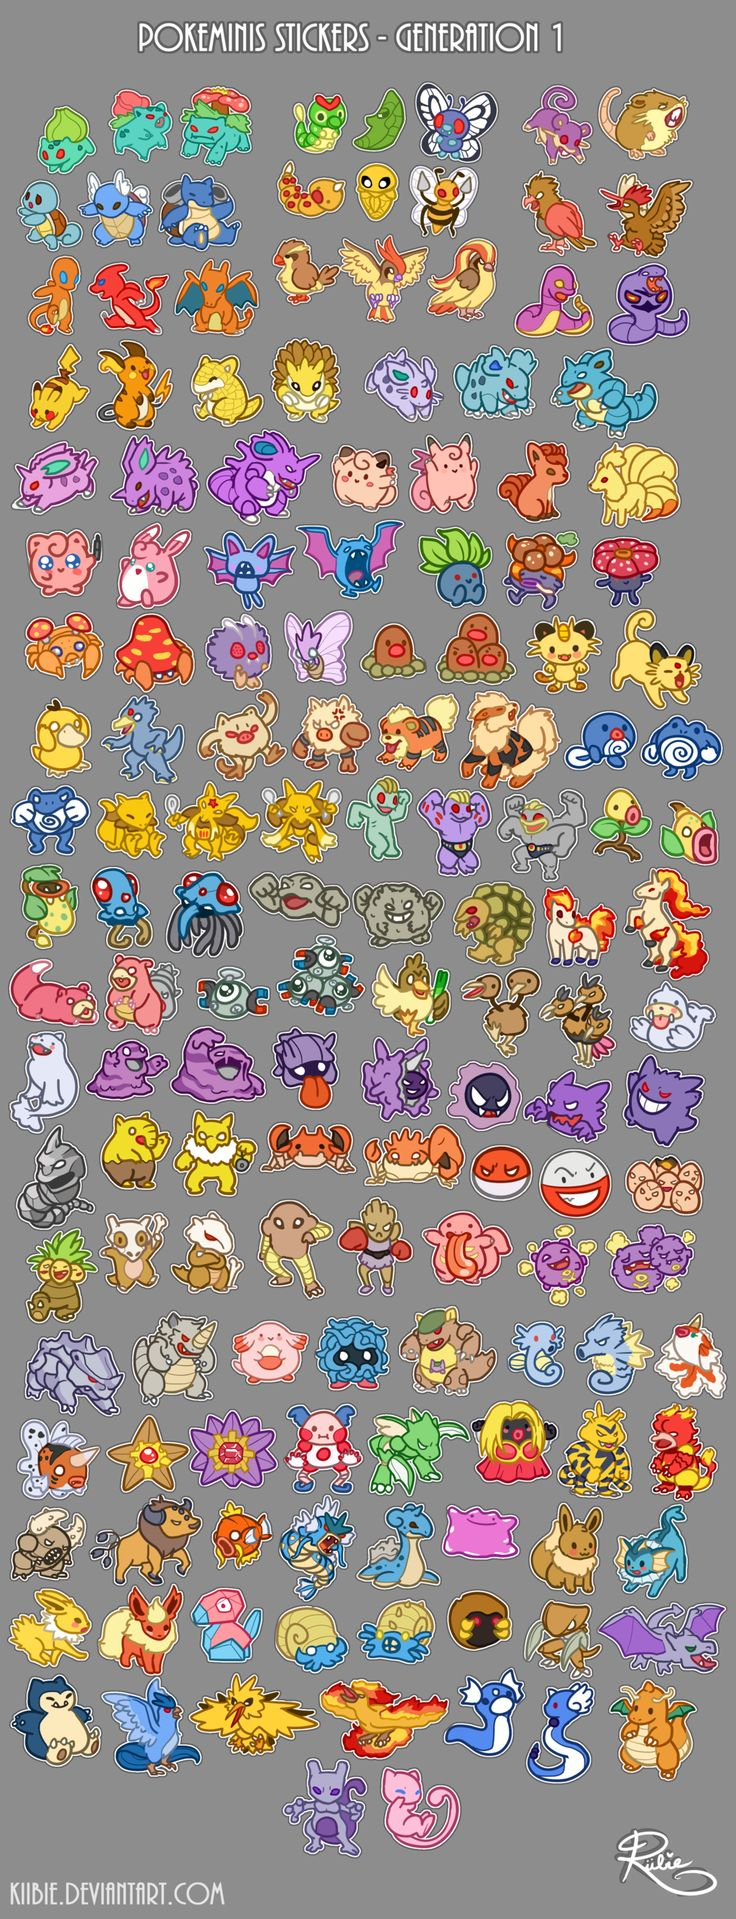 Pokeminis stickers - Gen 1 by Kiibie Pokemon game user interface gui ui | Create your own roleplaying game material w/ RPG Bard: www.rpgbard.com | Writing inspiration for Dungeons and Dragons DND D&D Pathfinder PFRPG Warhammer 40k Star Wars Shadowrun Call of Cthulhu Lord of the Rings LoTR + d20 fantasy science fiction scifi horror design | Not Trusty Sword art: click artwork for source